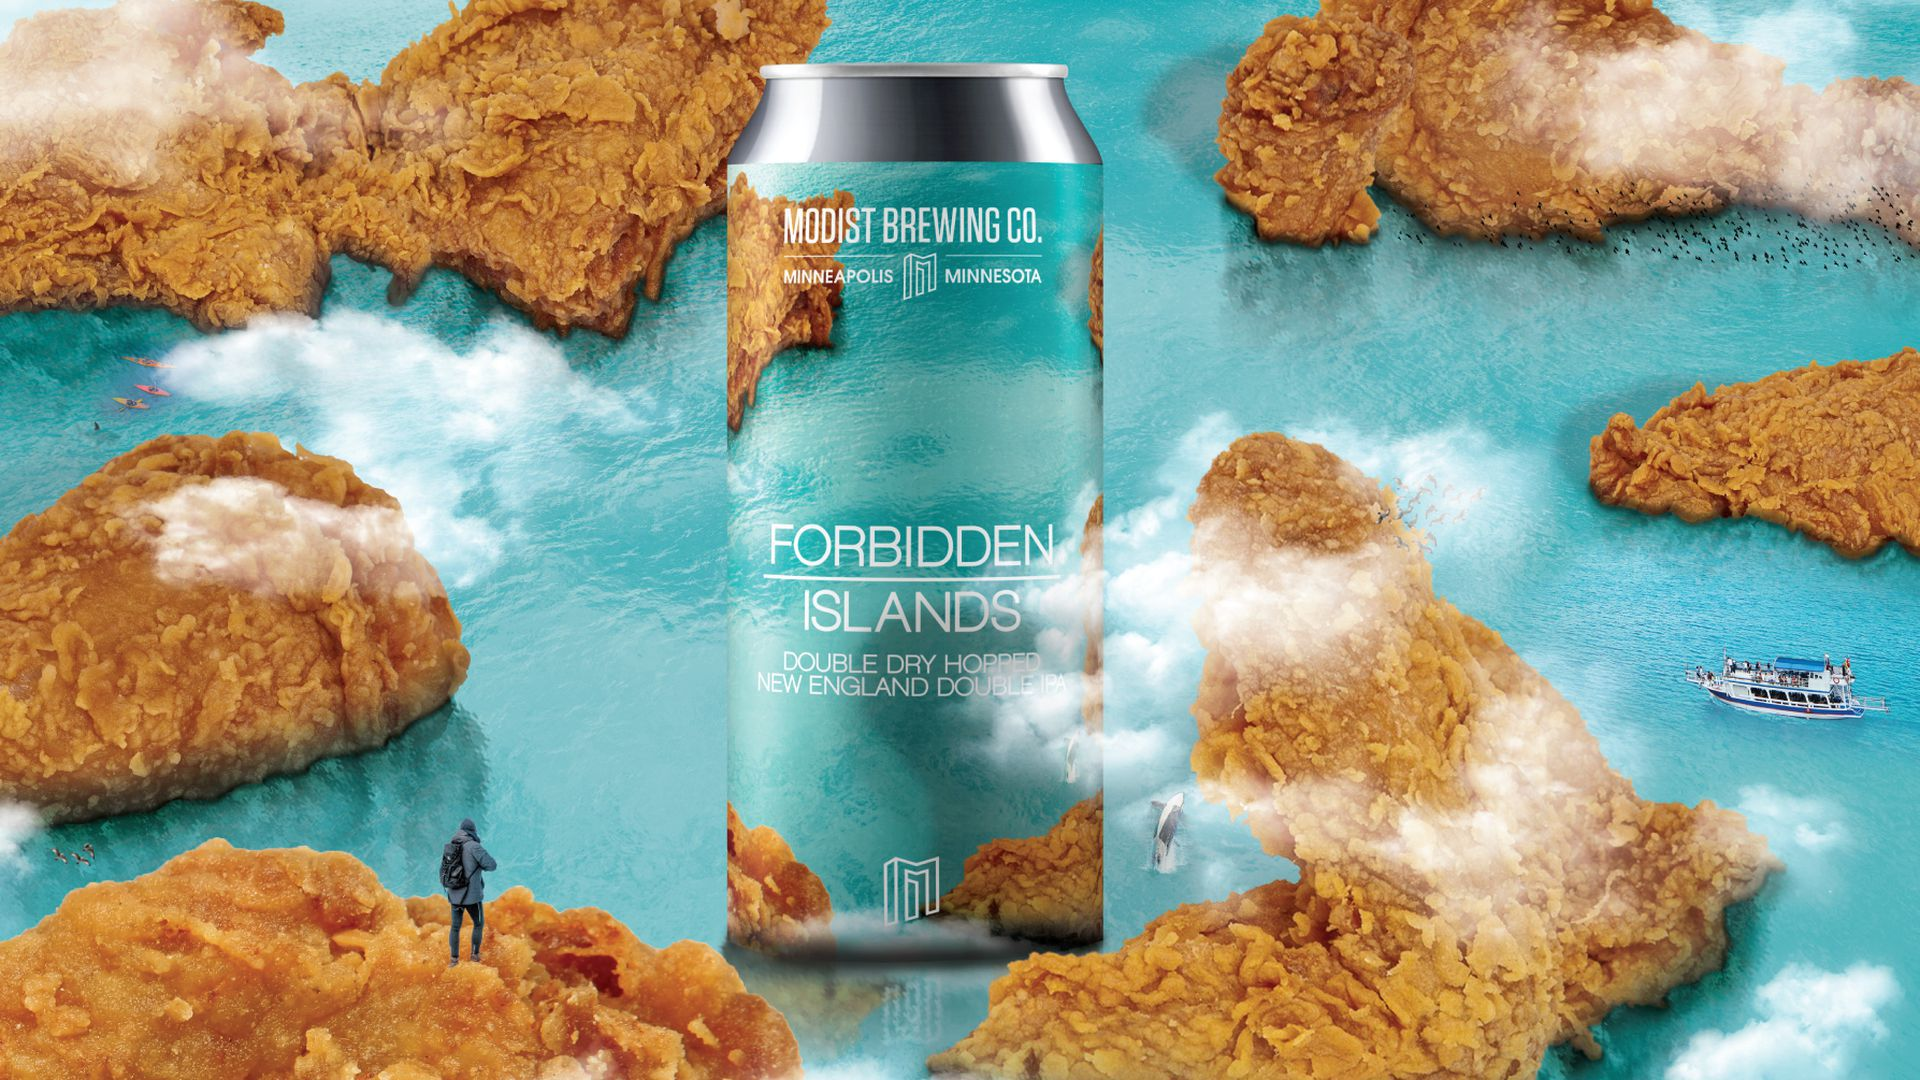 The art for Forbidden Islands New England IPA. Image courtesy of Modist Brewing